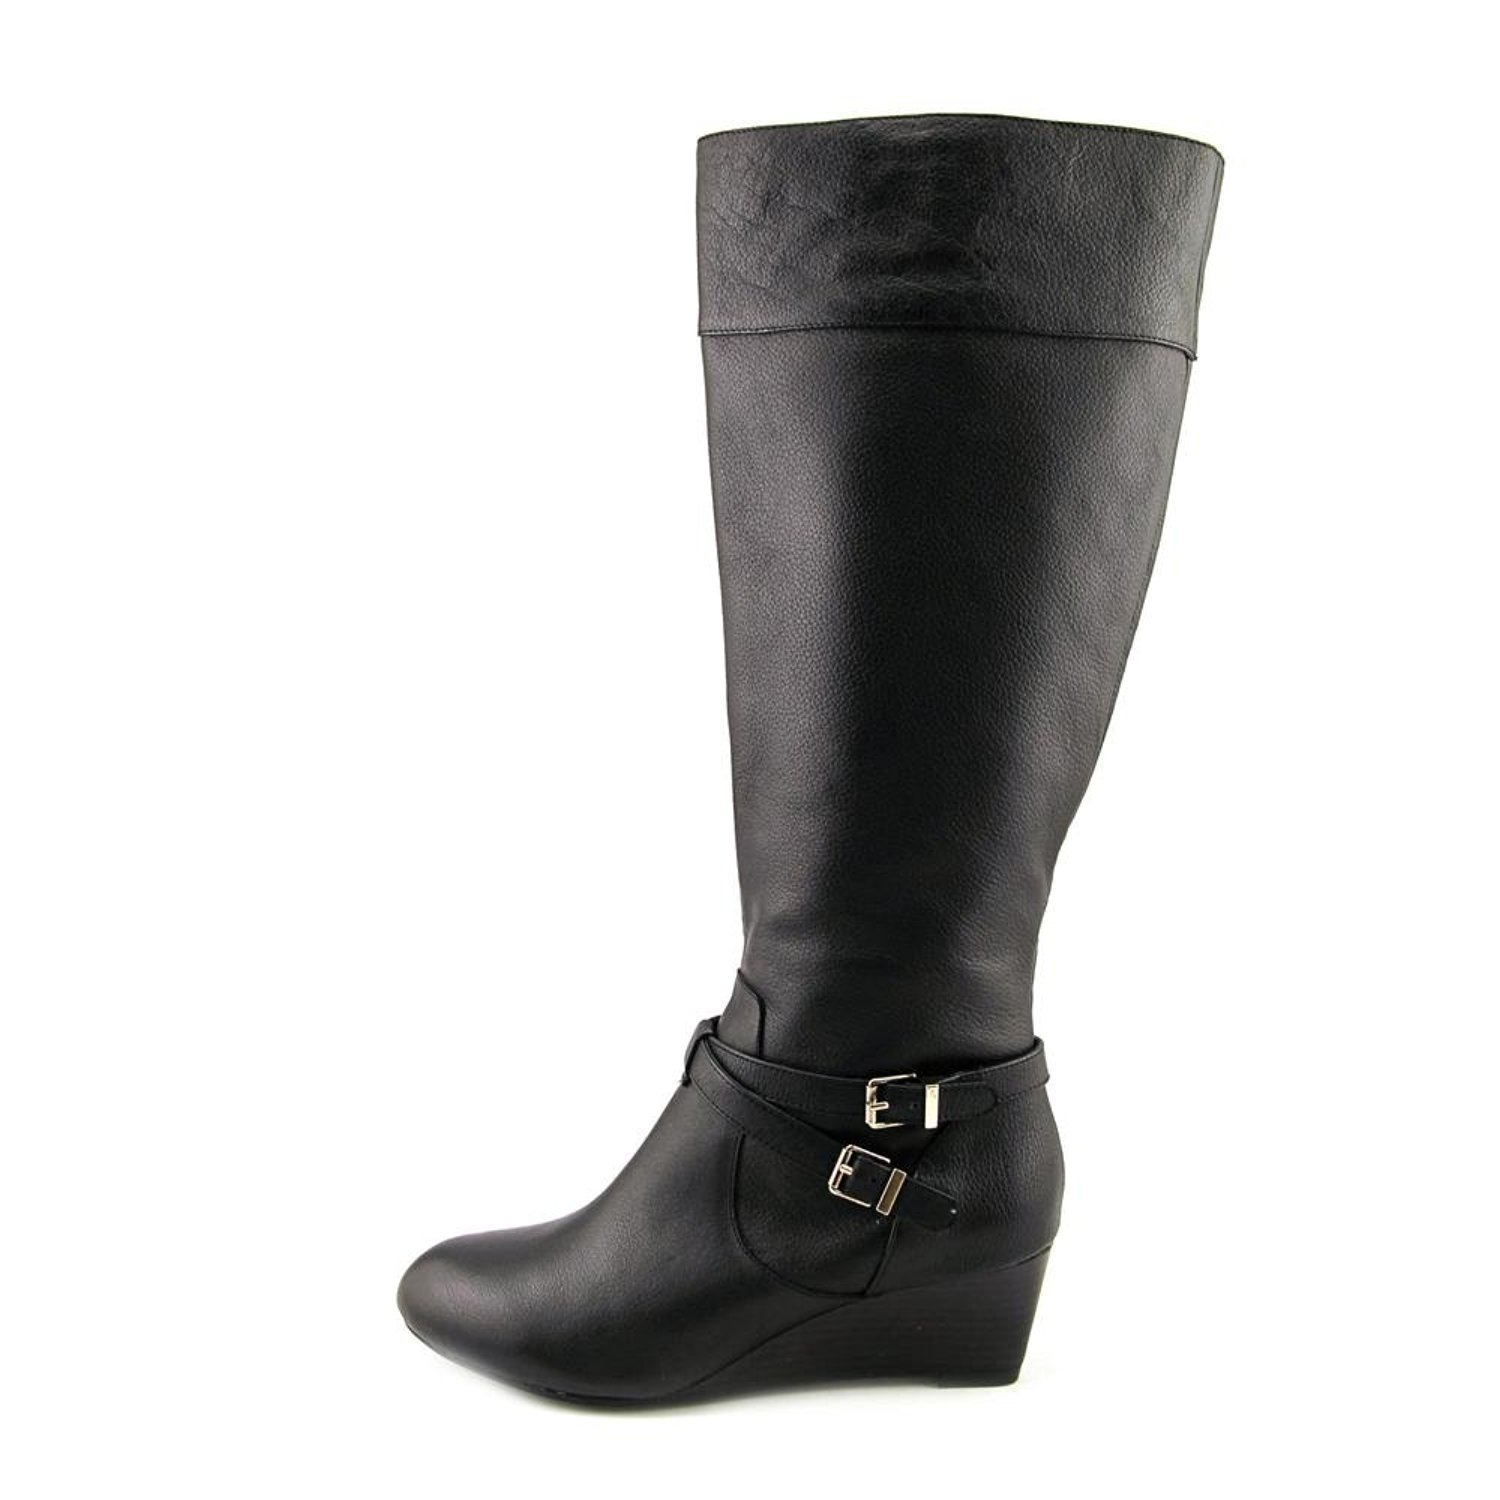 giani bernini s kalie wide calf leather knee high